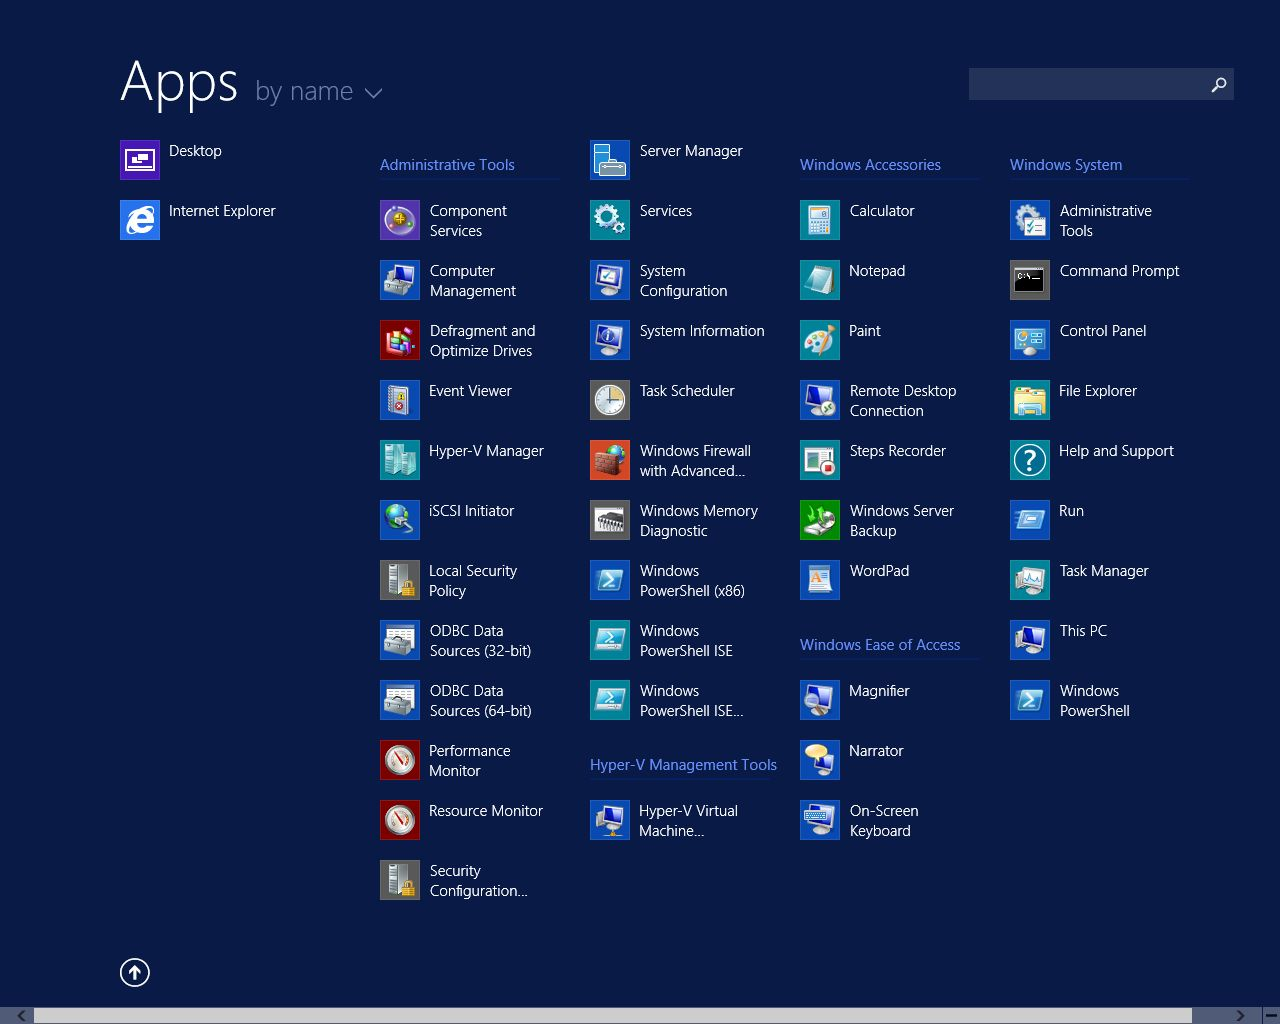 Windows Server 2012 start menu